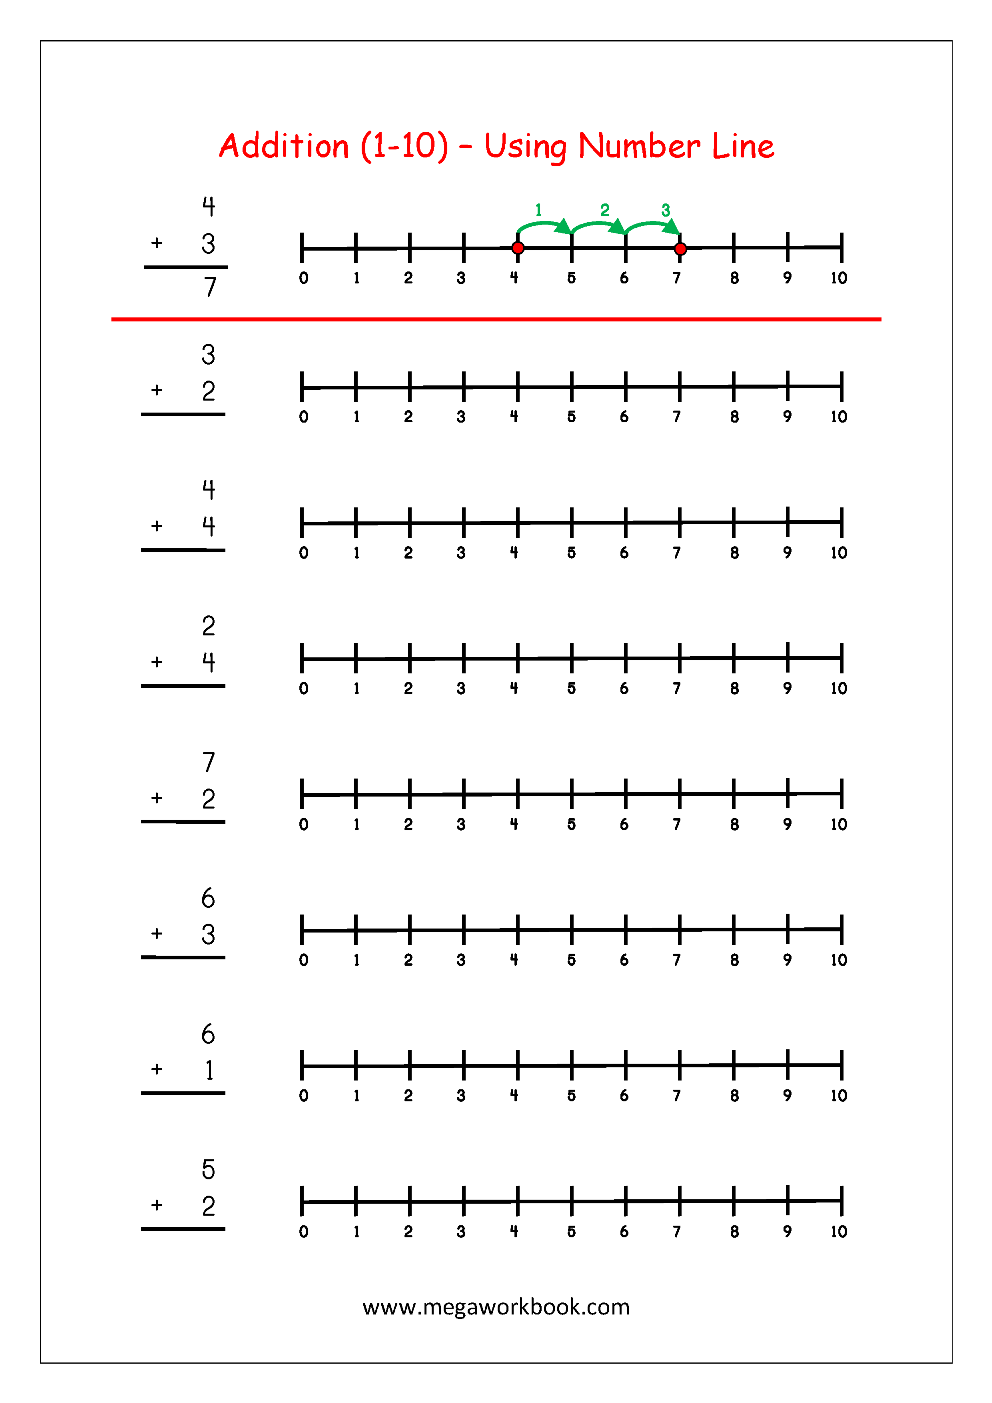 Addition Using Number Line Scalien – Addition with Number Line Worksheet